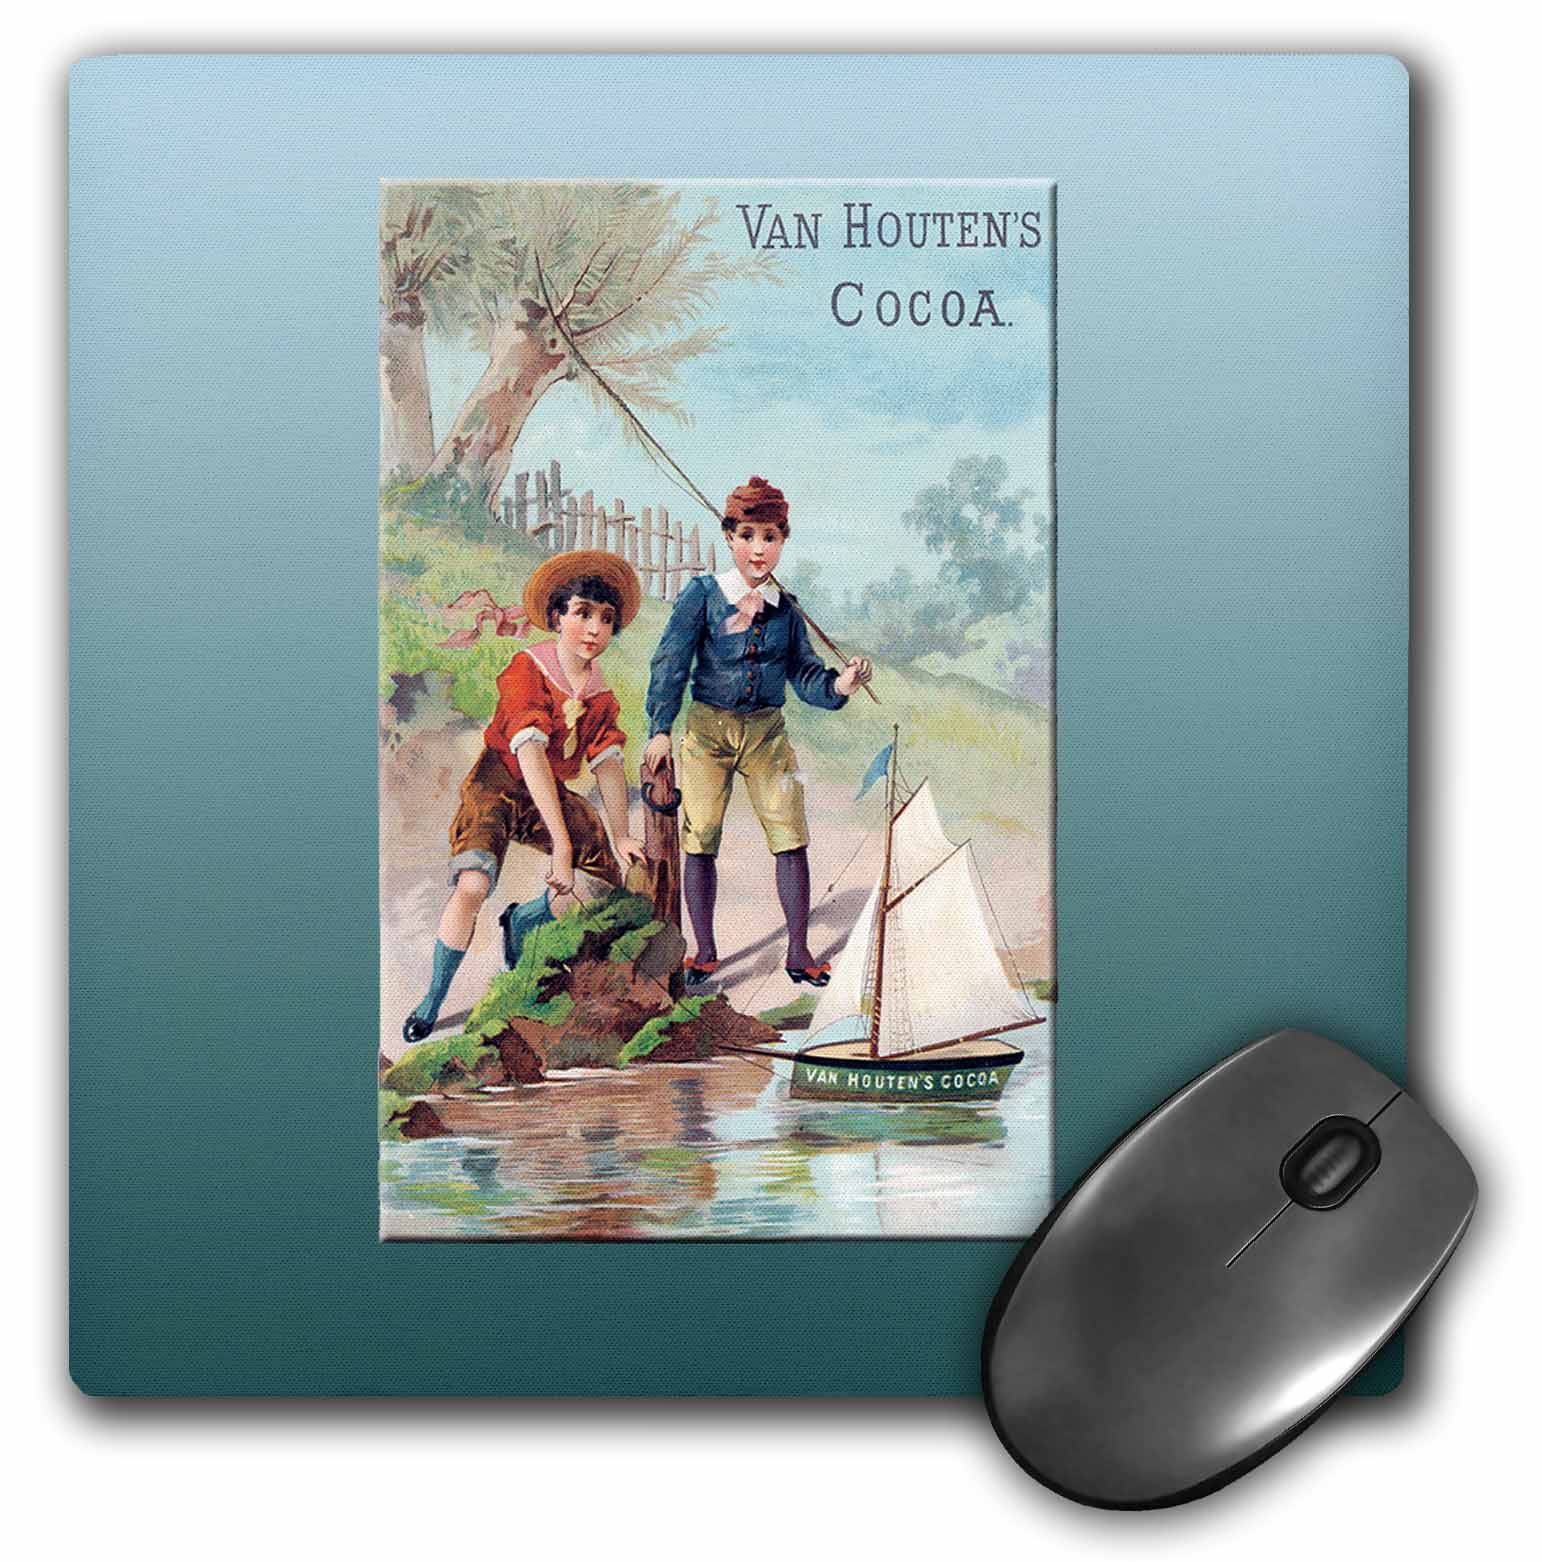 3dRose Van Houtens Cocoa Little Boys with a Toy Sailboat, Mouse Pad, 8 by 8 inches by 3dRose